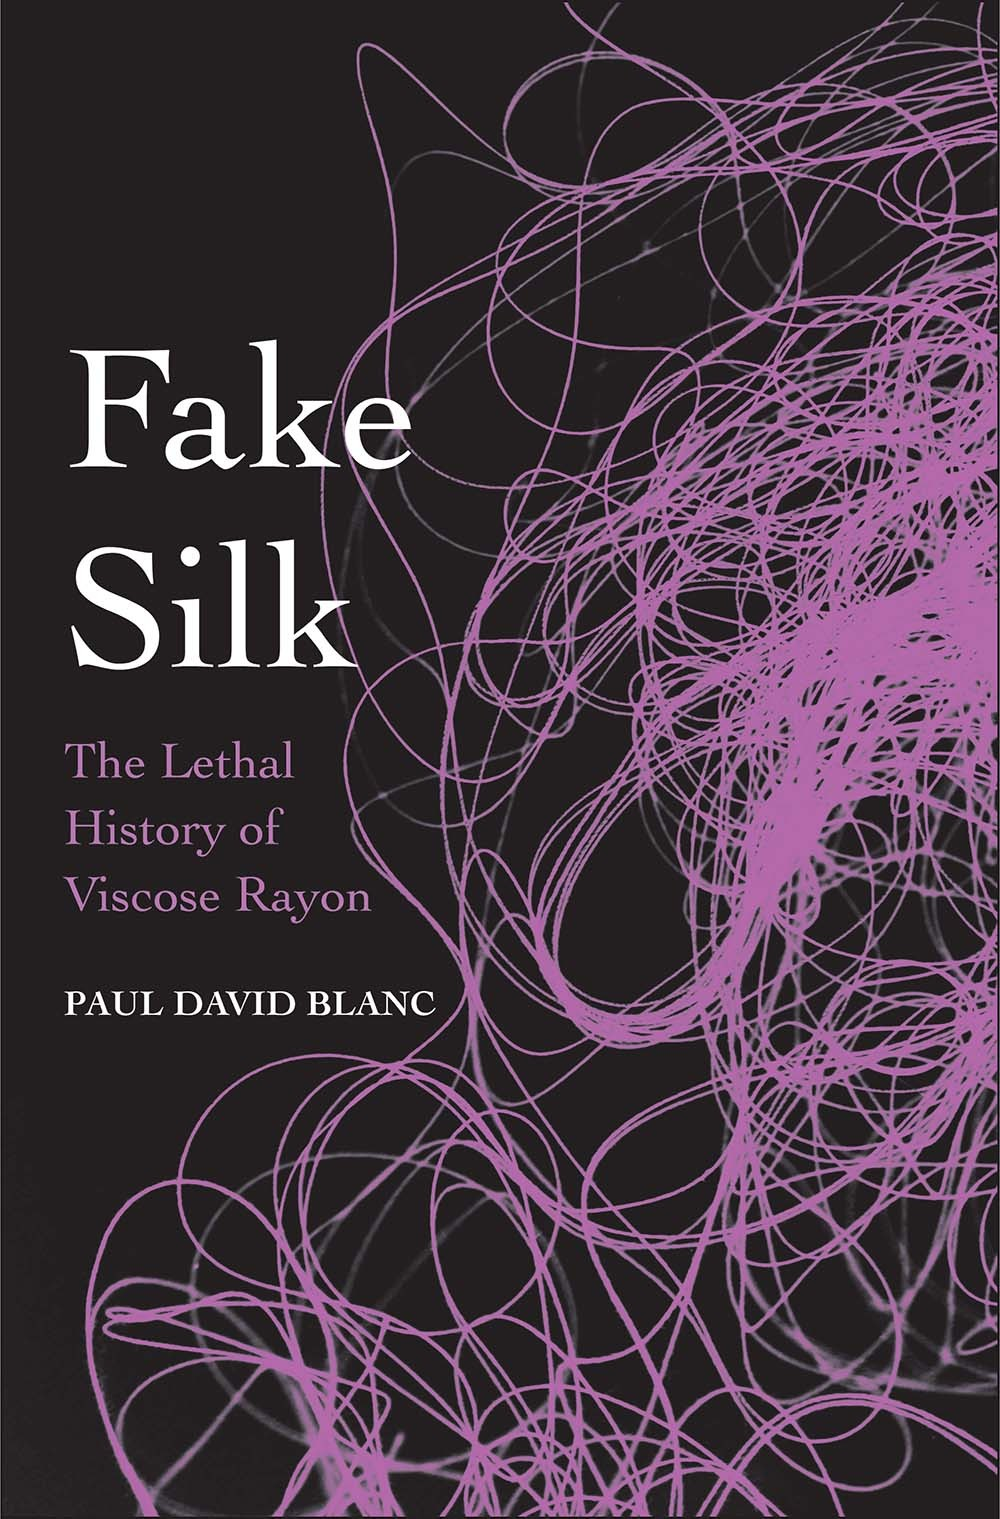 Fake Silk The Lethal History of Viscose Rayon